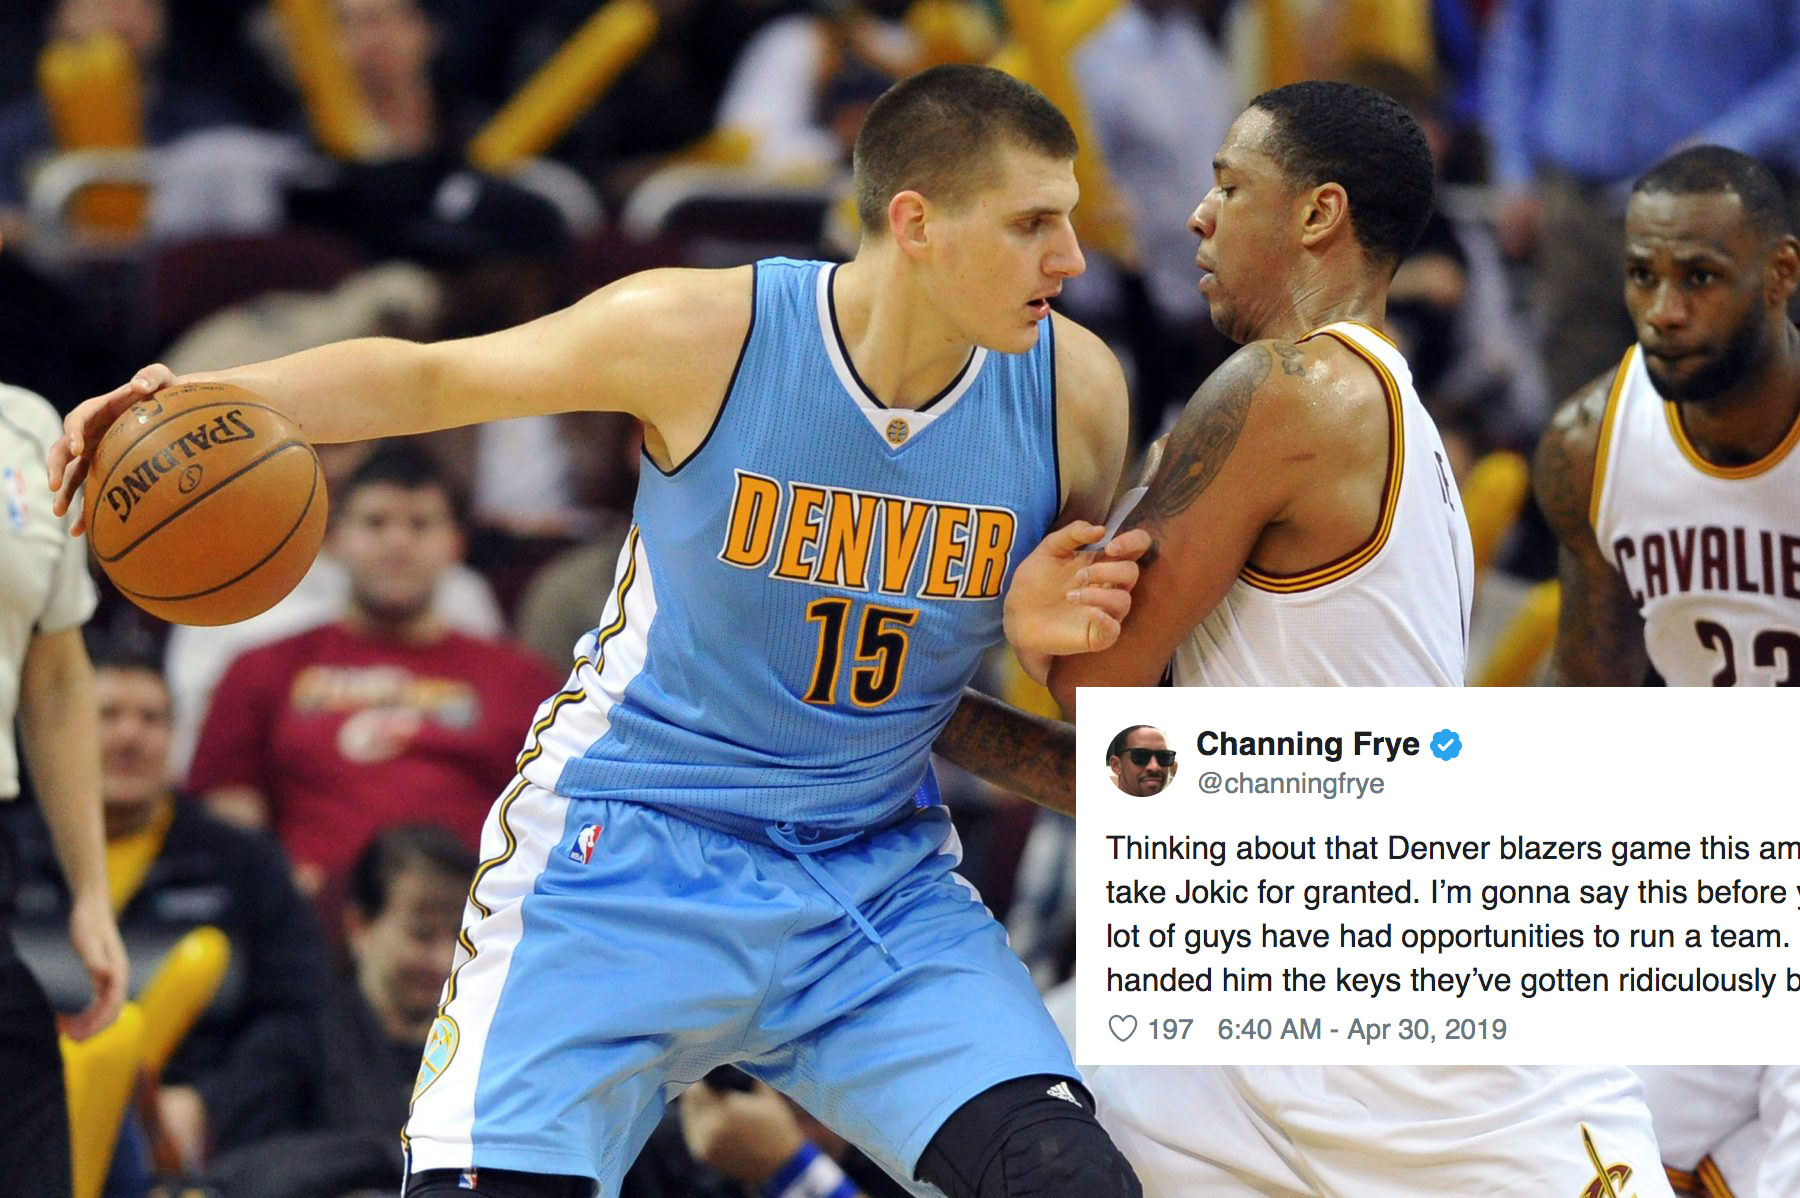 Nikola Jokic and Channing Frye